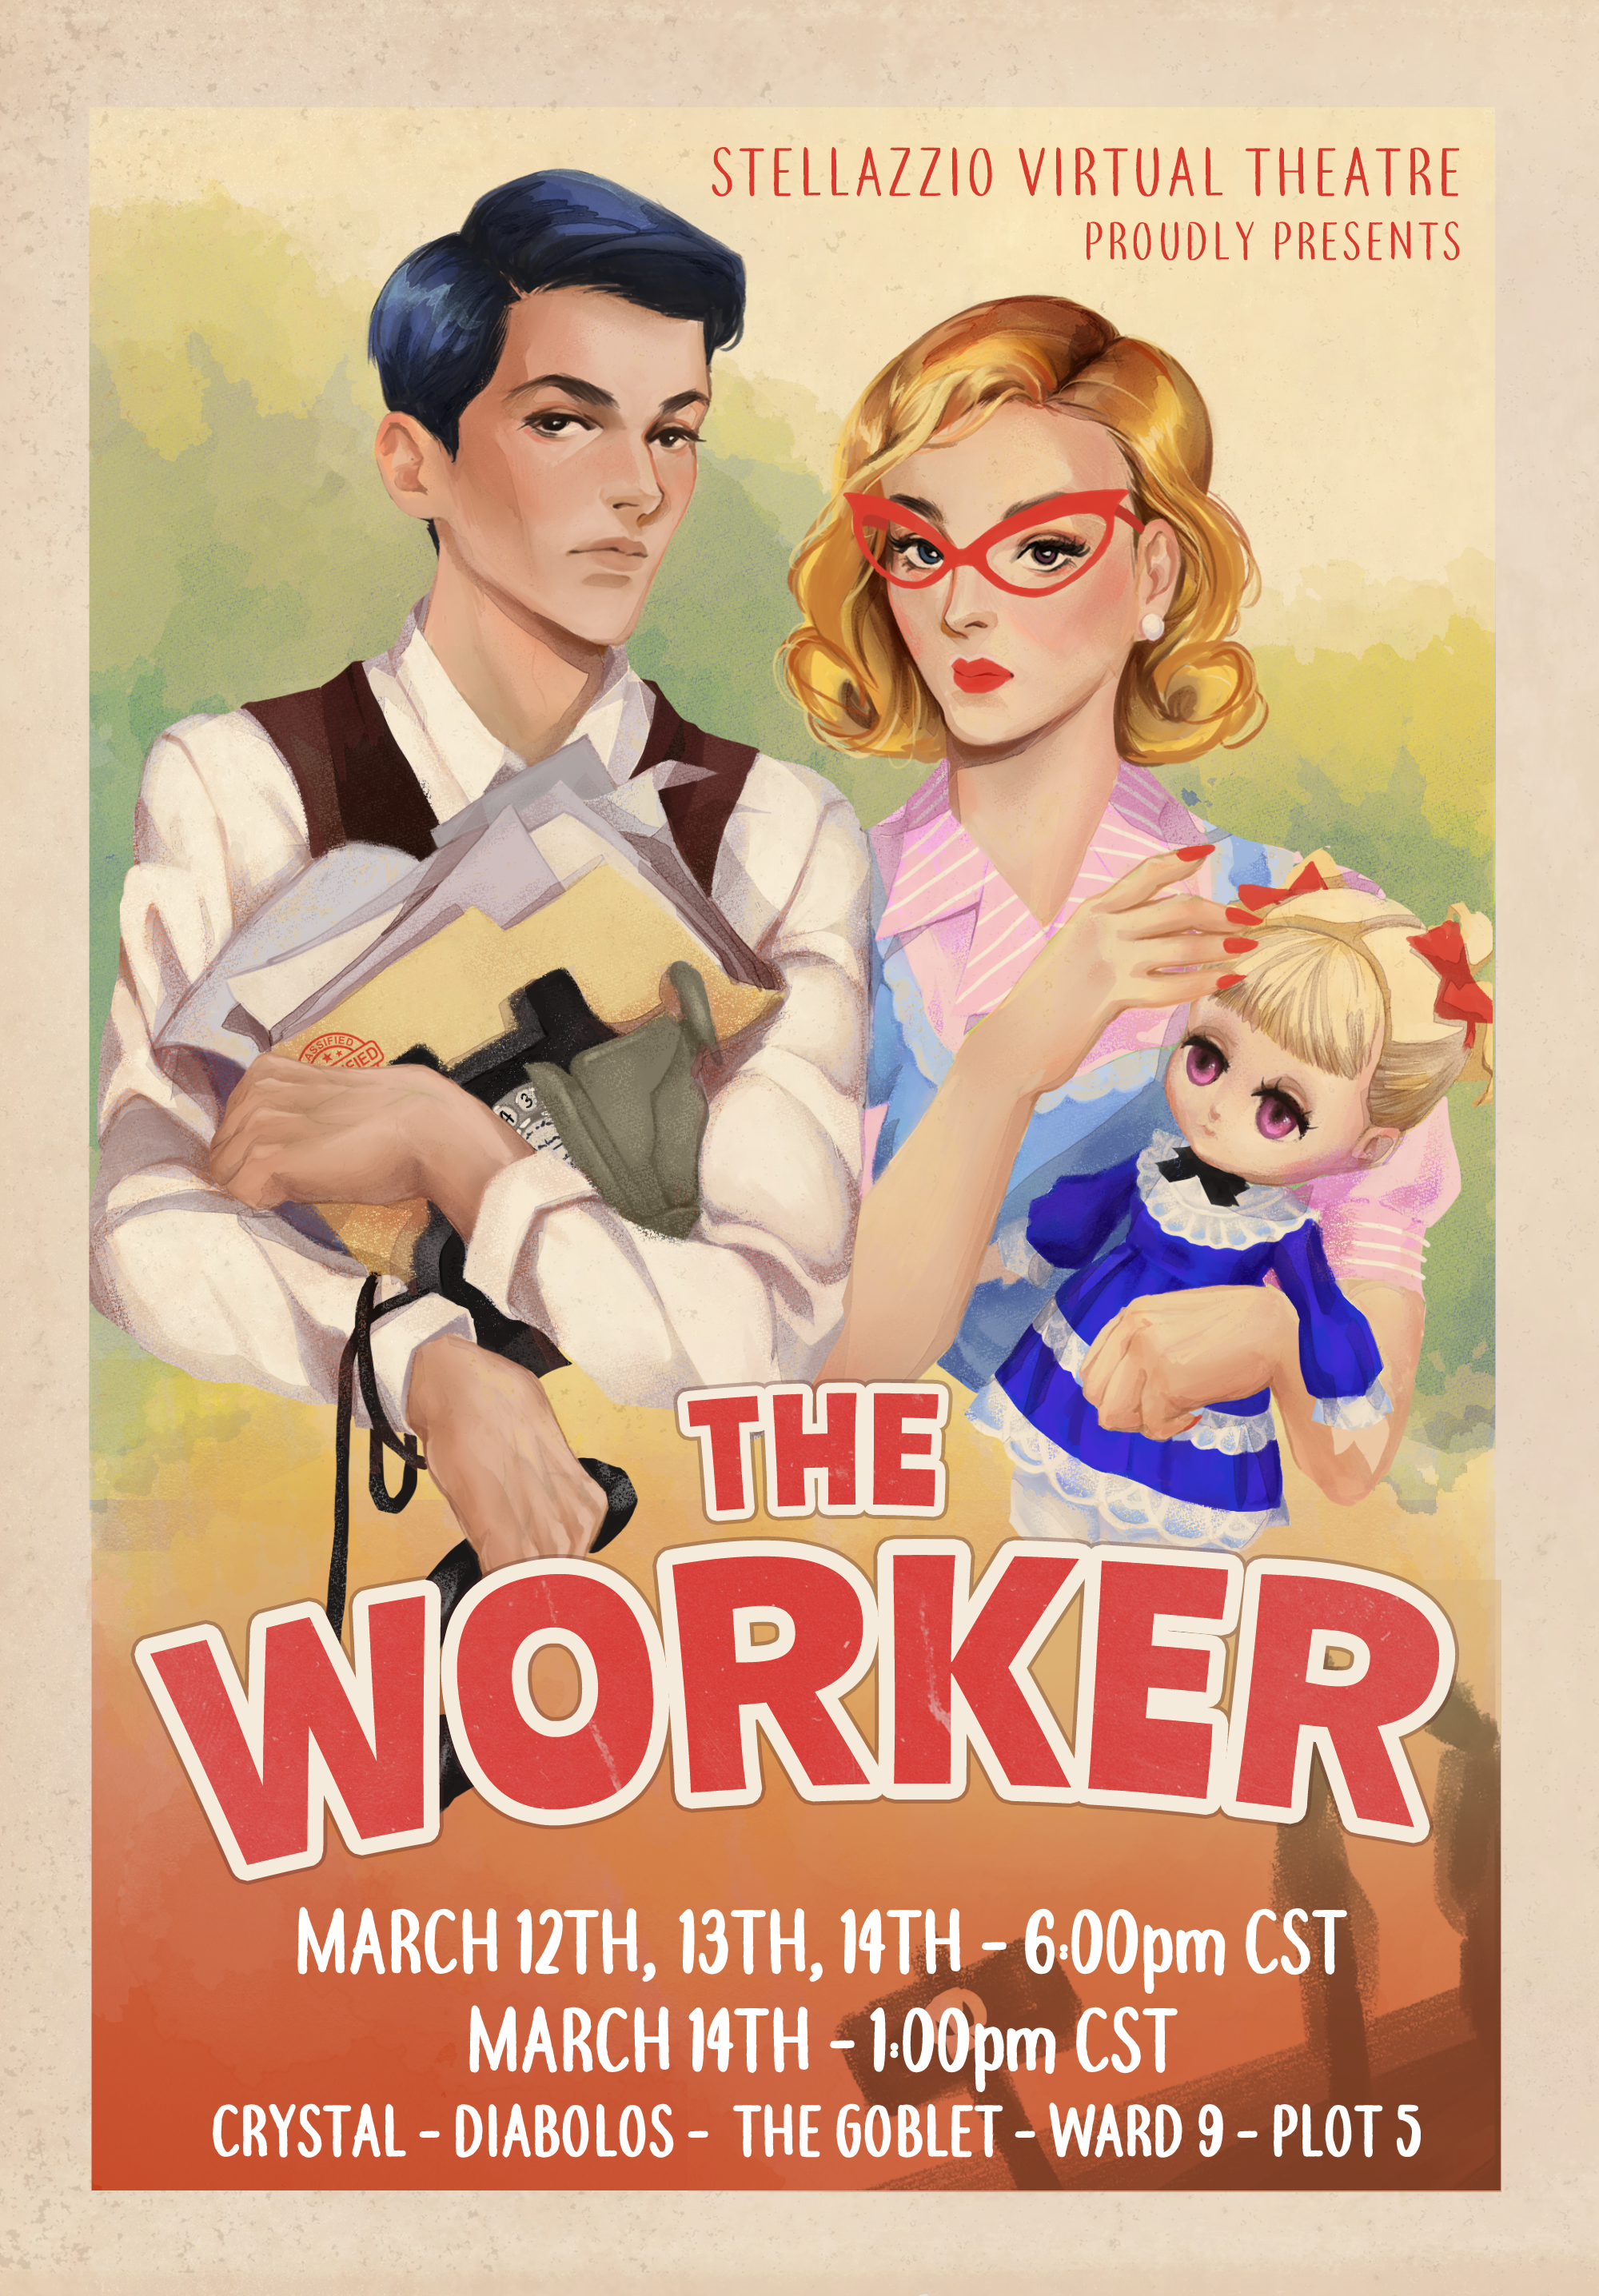 The Worker announcement poster